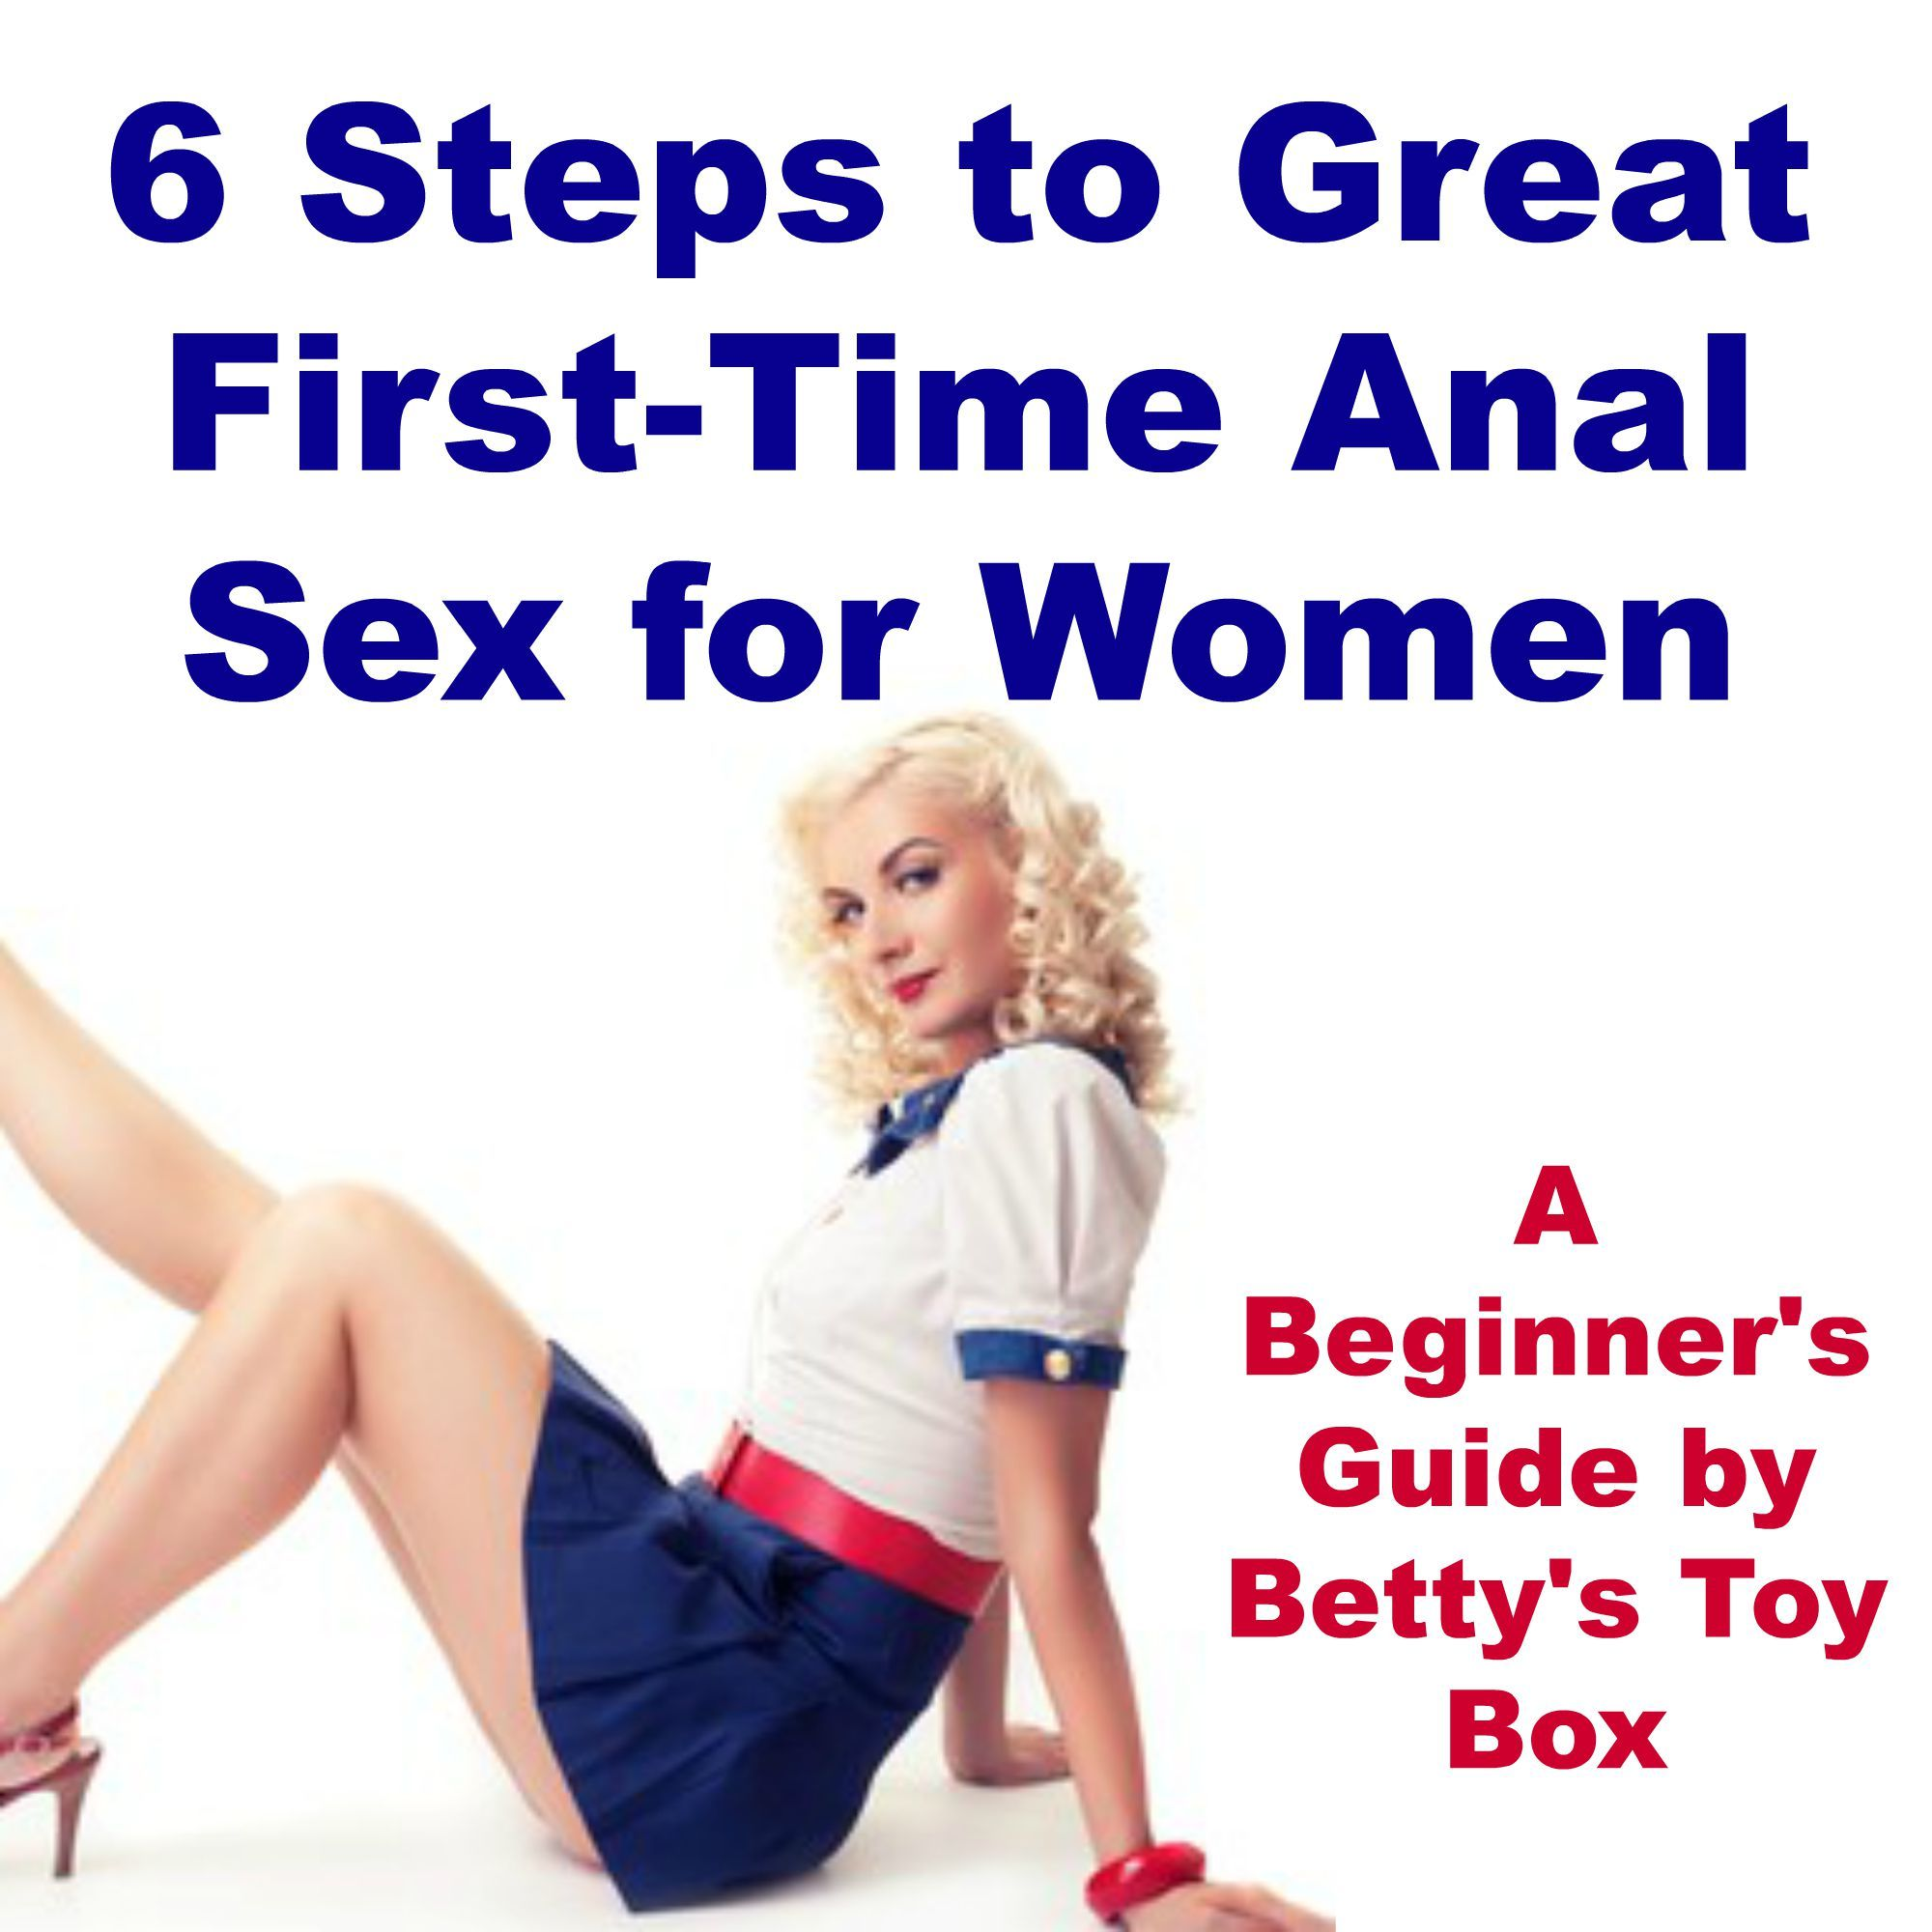 Steps to anal intercourse